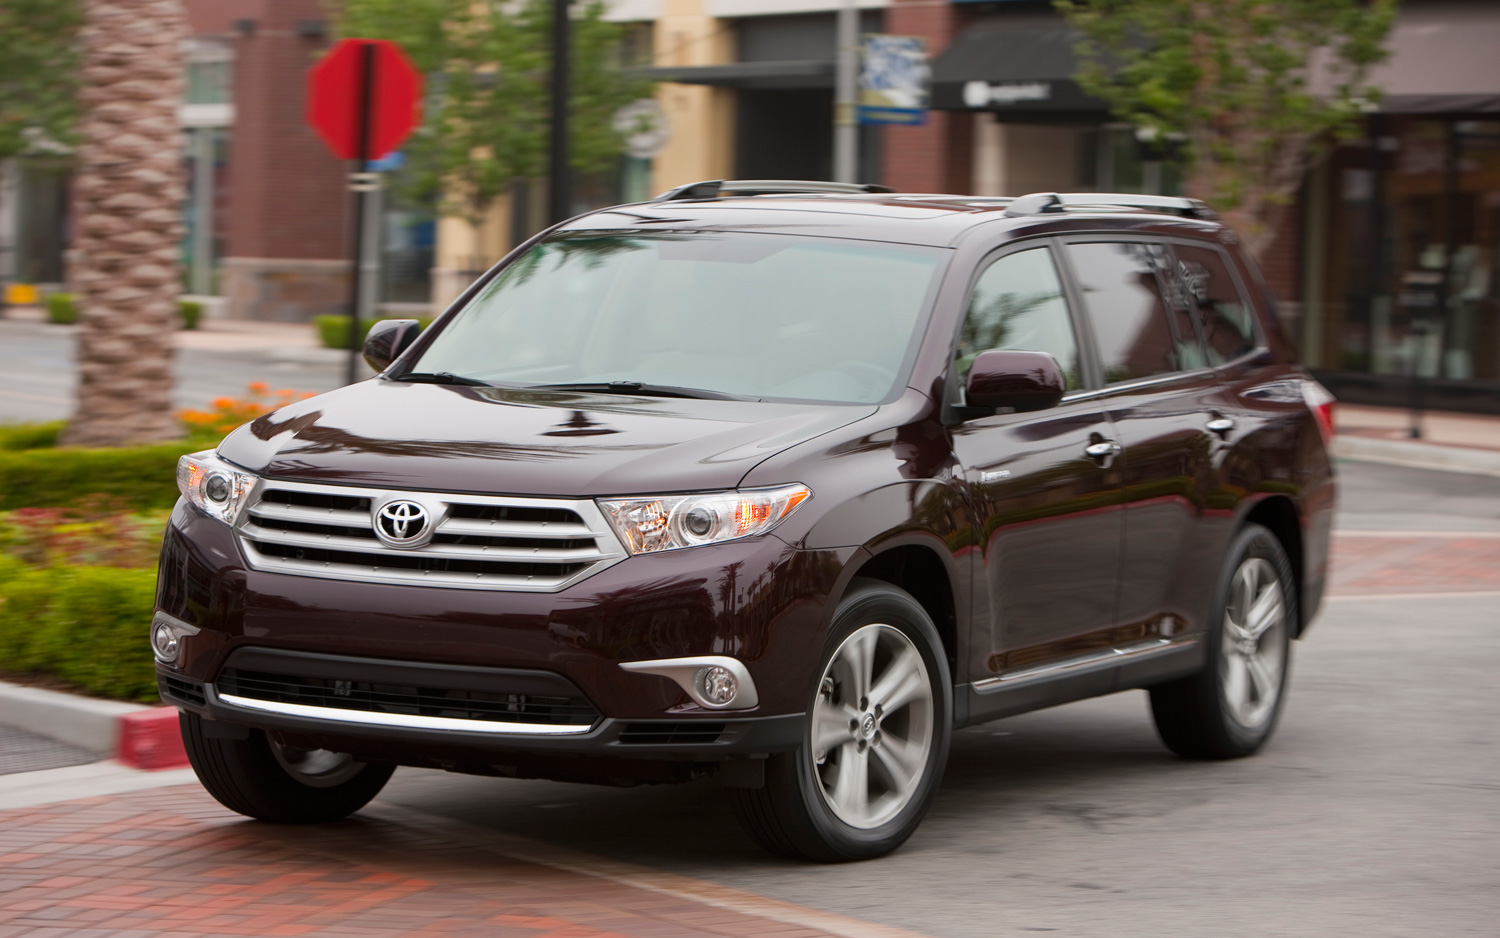 new car models release dates 2014New Car Models Toyota highlander 2014